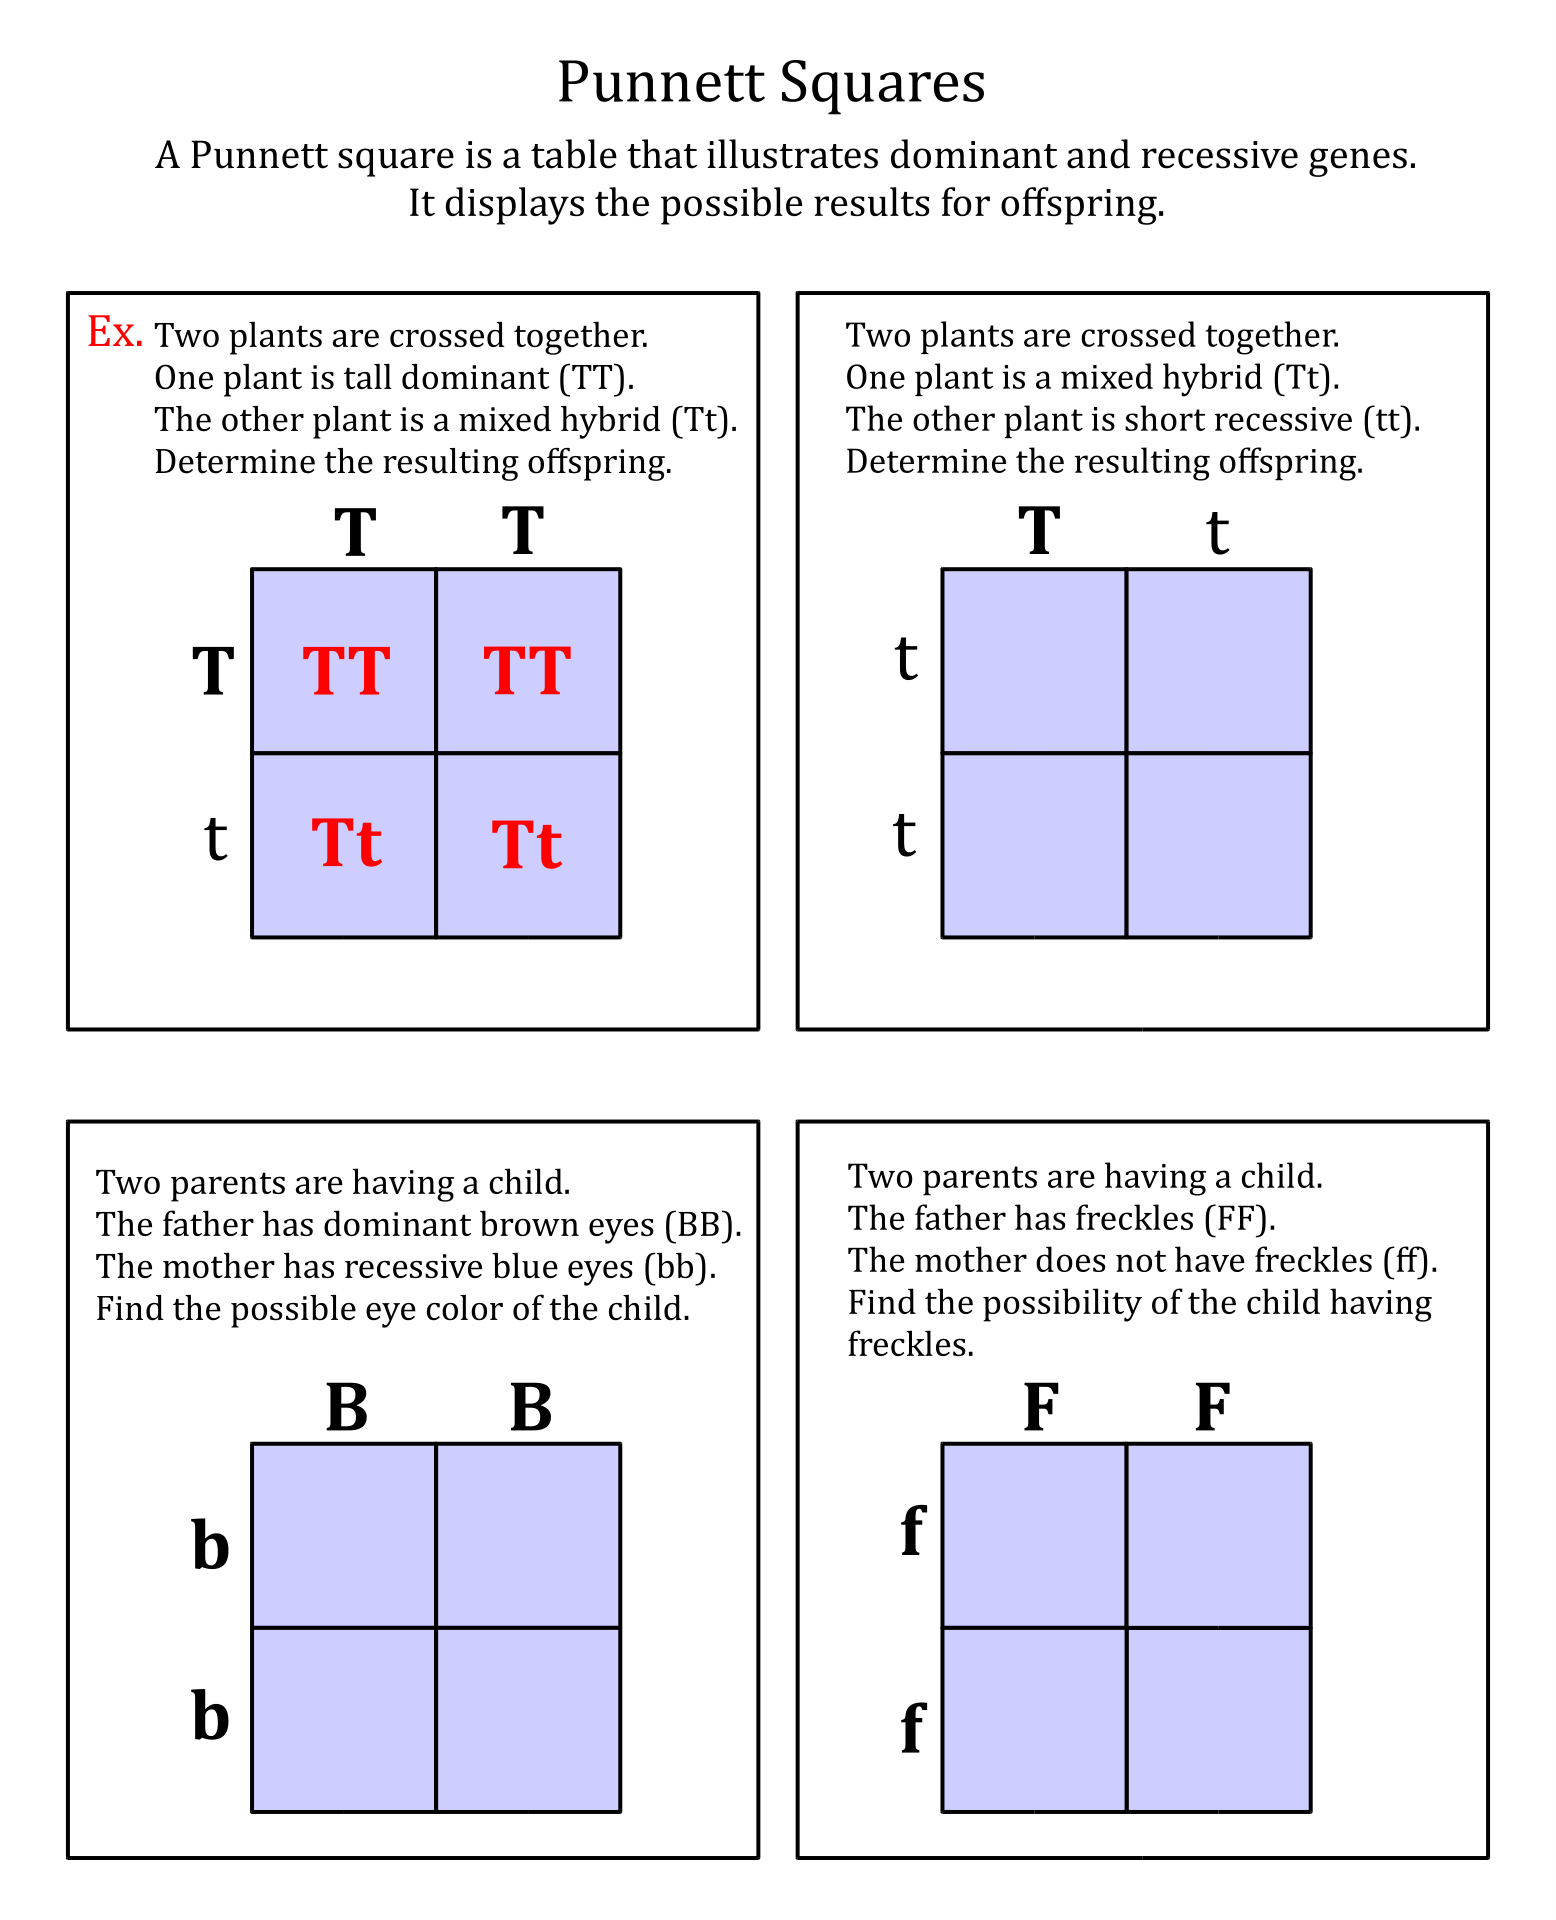 Punnett Square Worksheet 1 – Punnett Square Worksheet 1 Answers